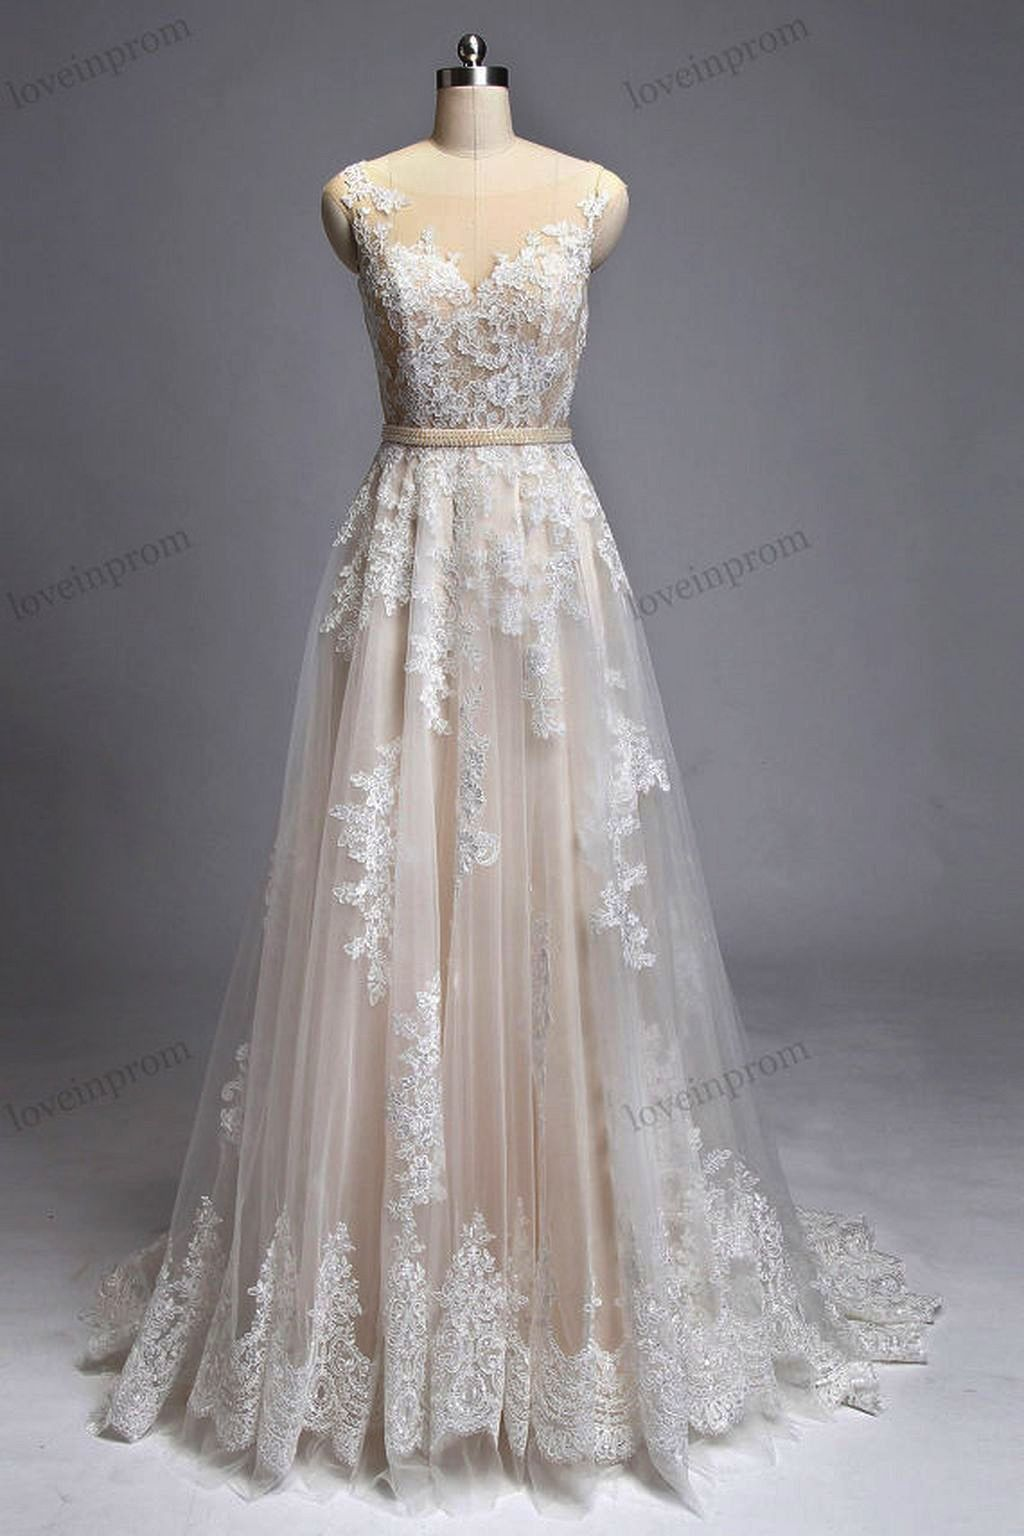 After wedding dress ideas  Outfit Ideas Boyfriend Jeans Fashion Halloween Ideas  Great Outfit